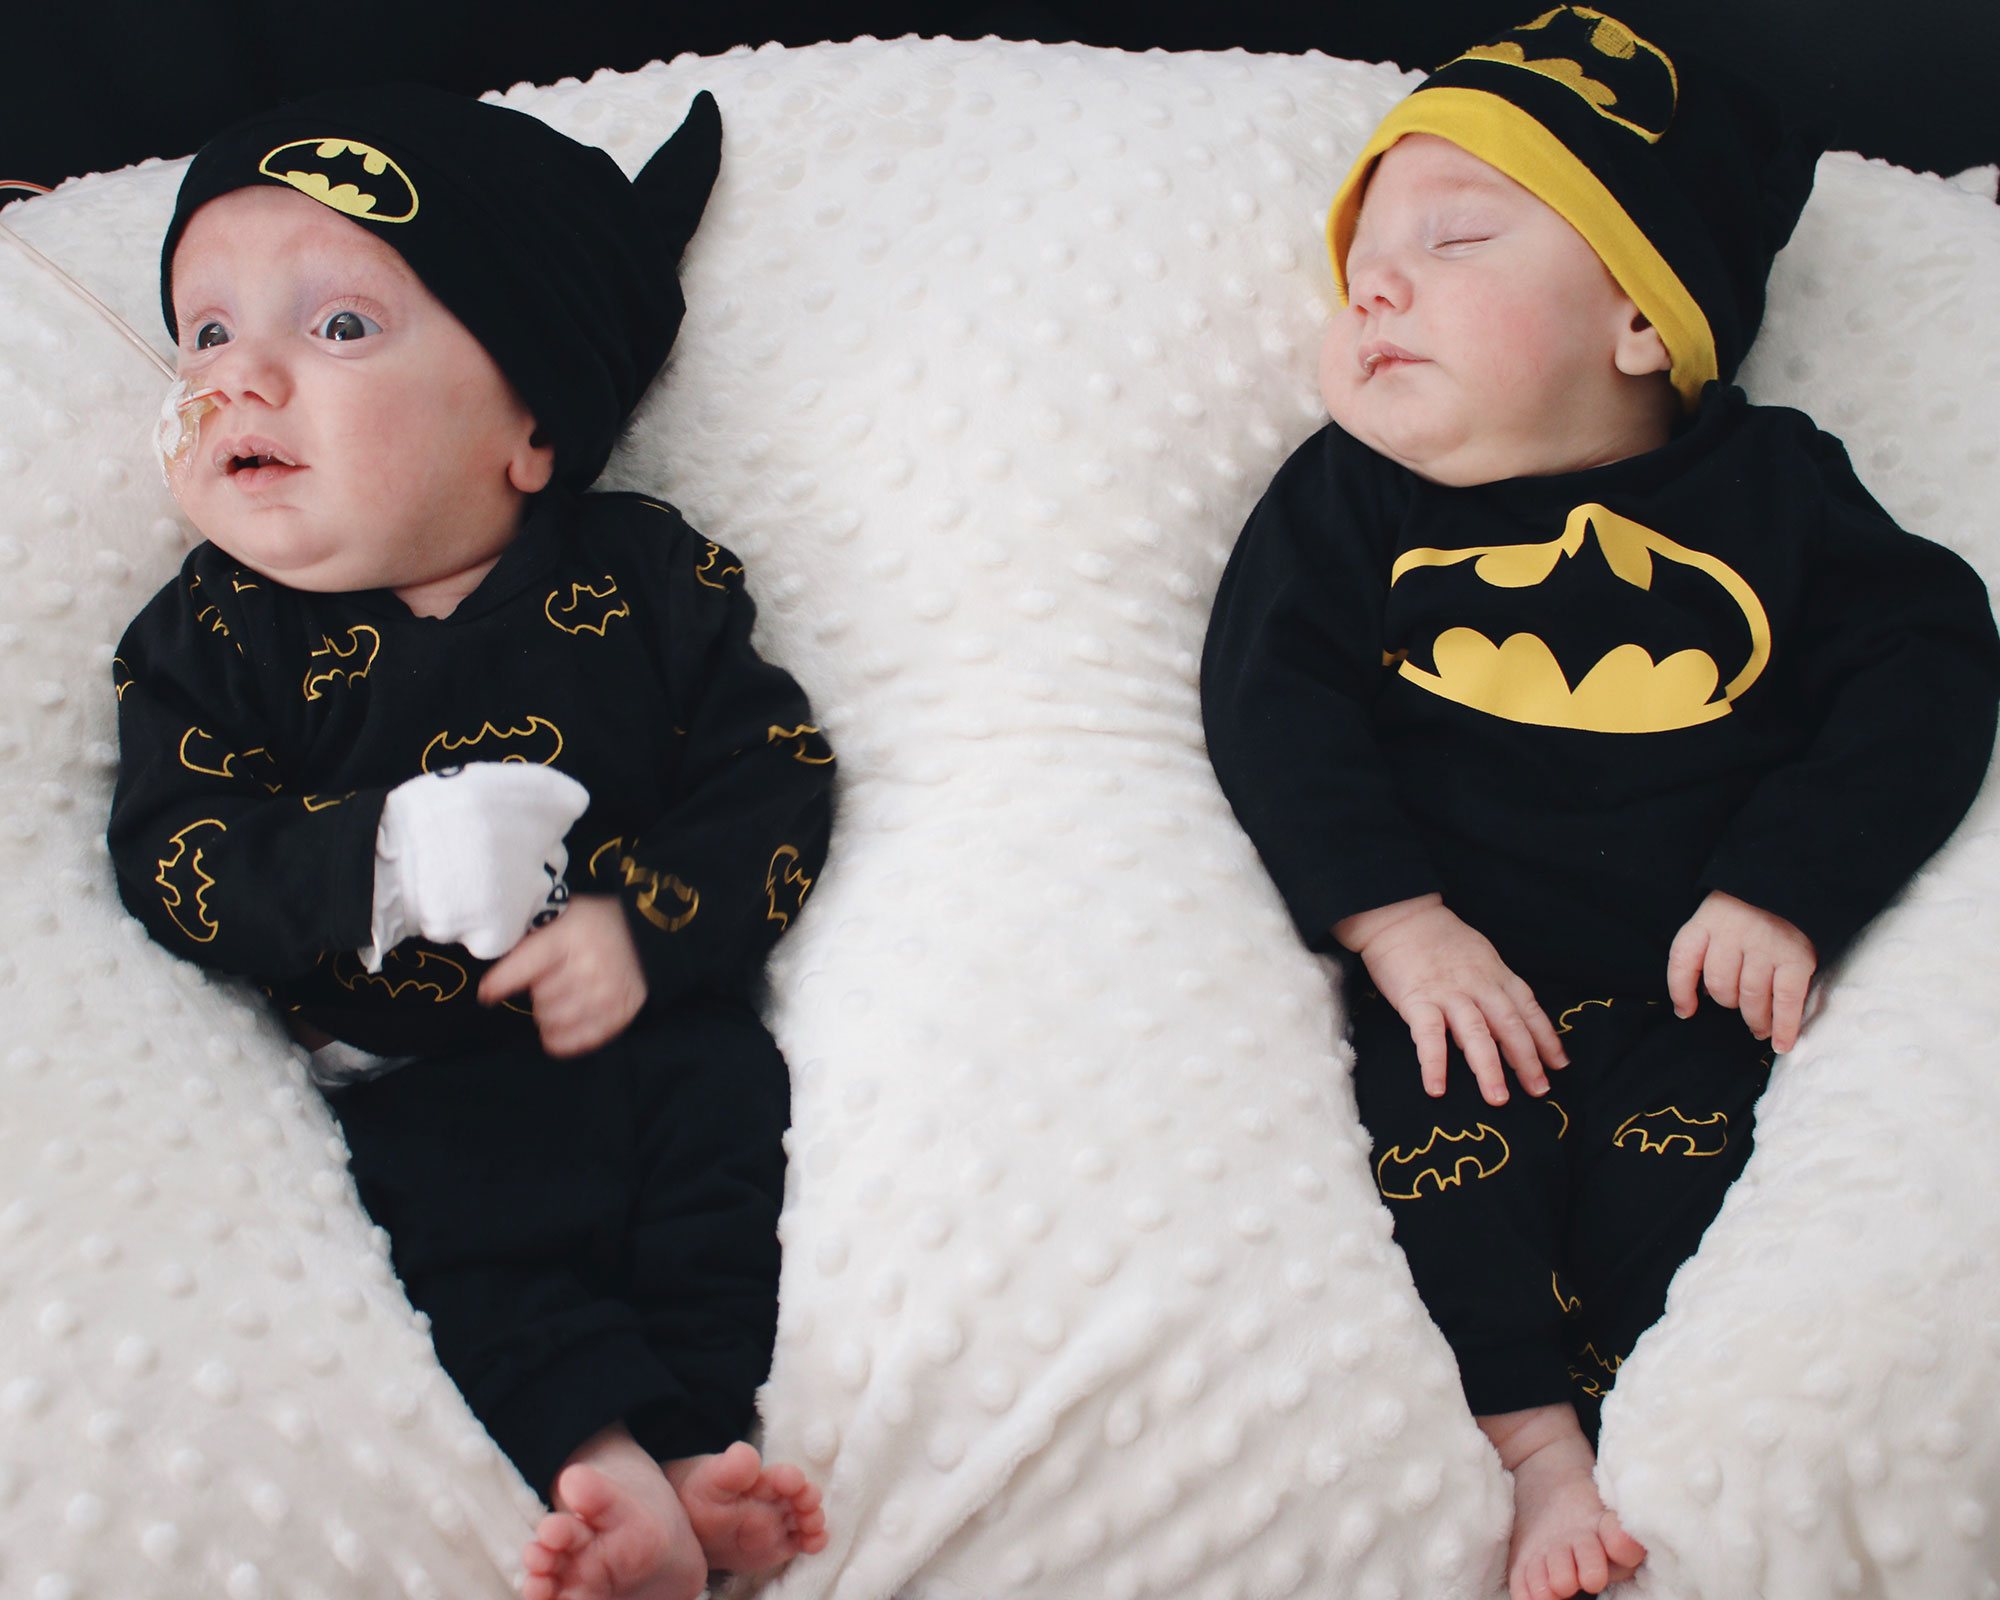 Mini Batman Twin Photo Shoot